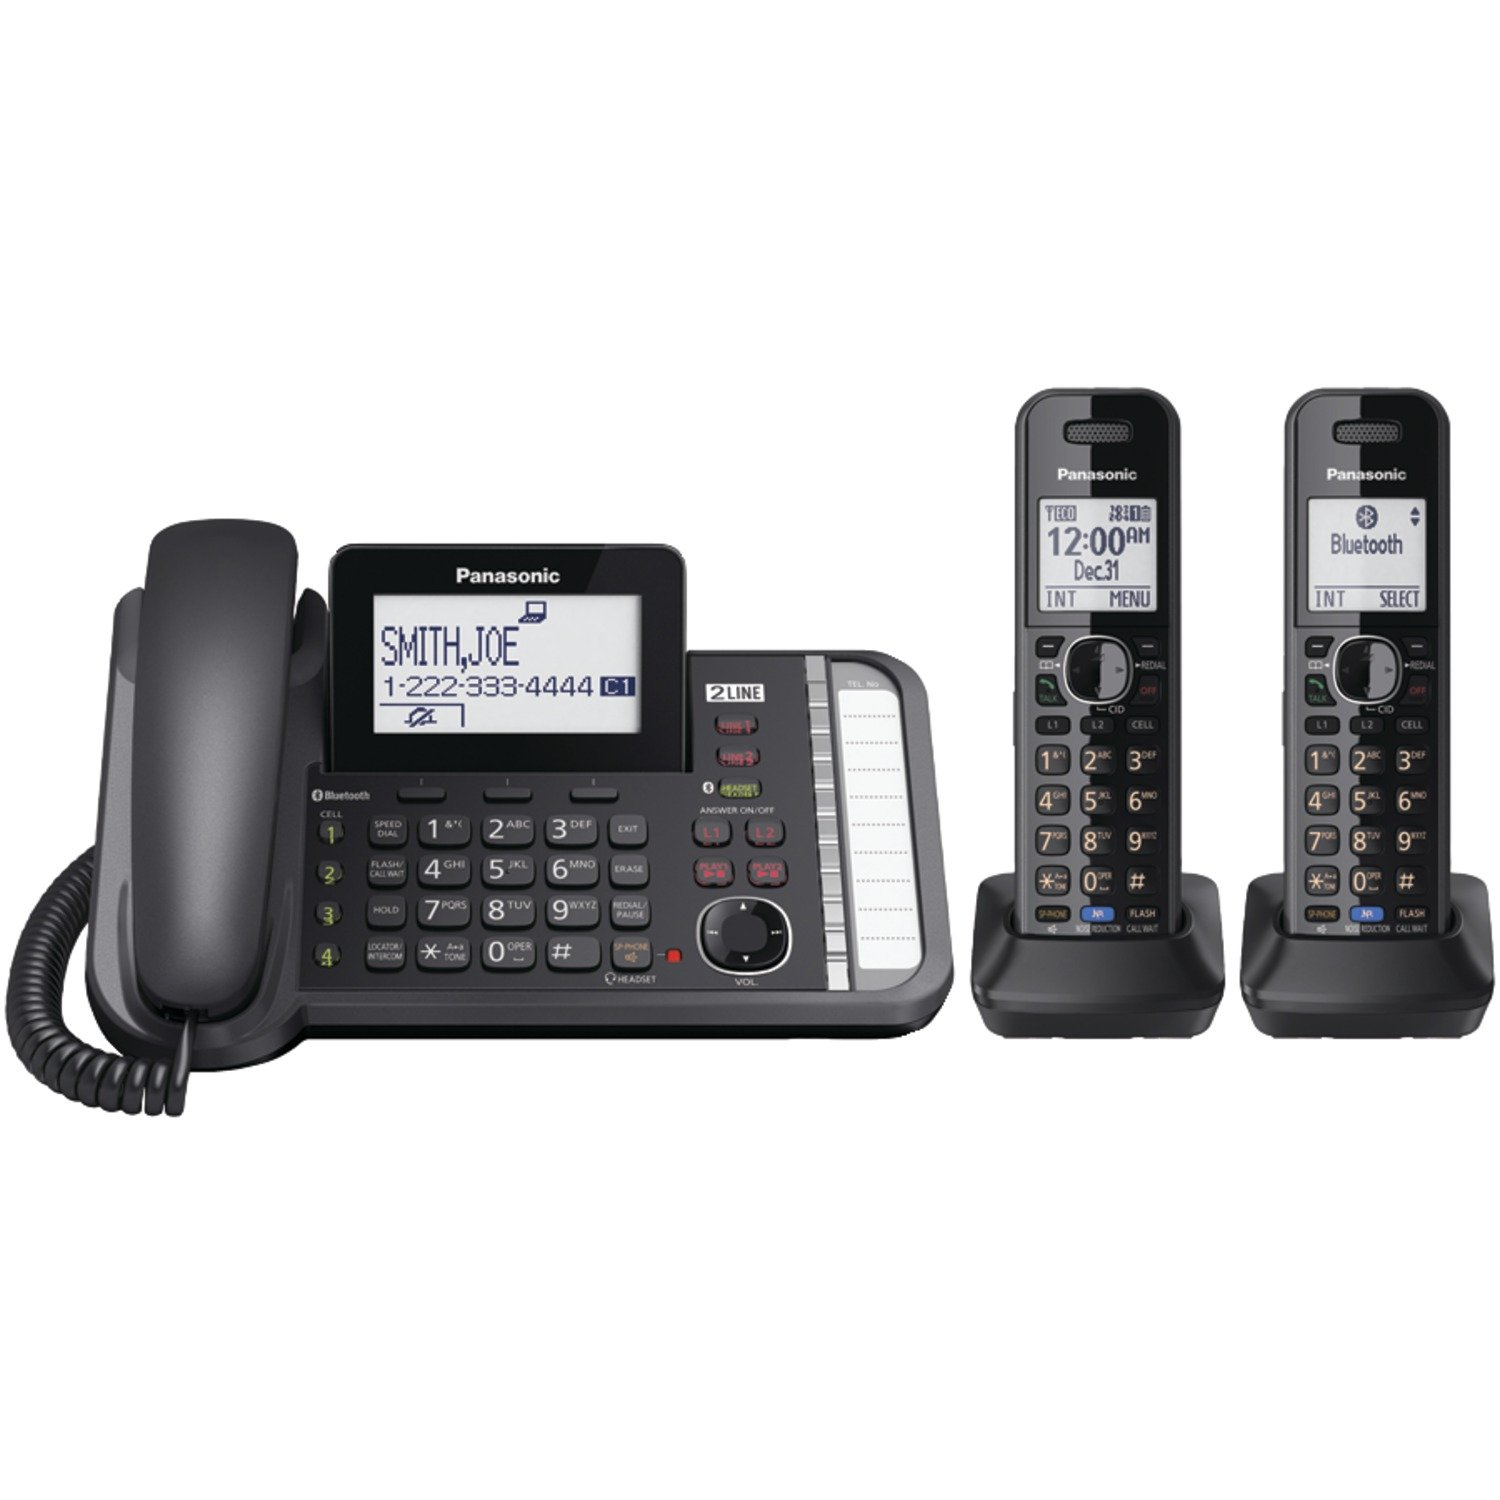 Panasonic KXTG9582B 2 -Line Corded/Cordless Expandable Link2Cell Telephone System with Two Cordless Handsets by Panasonic